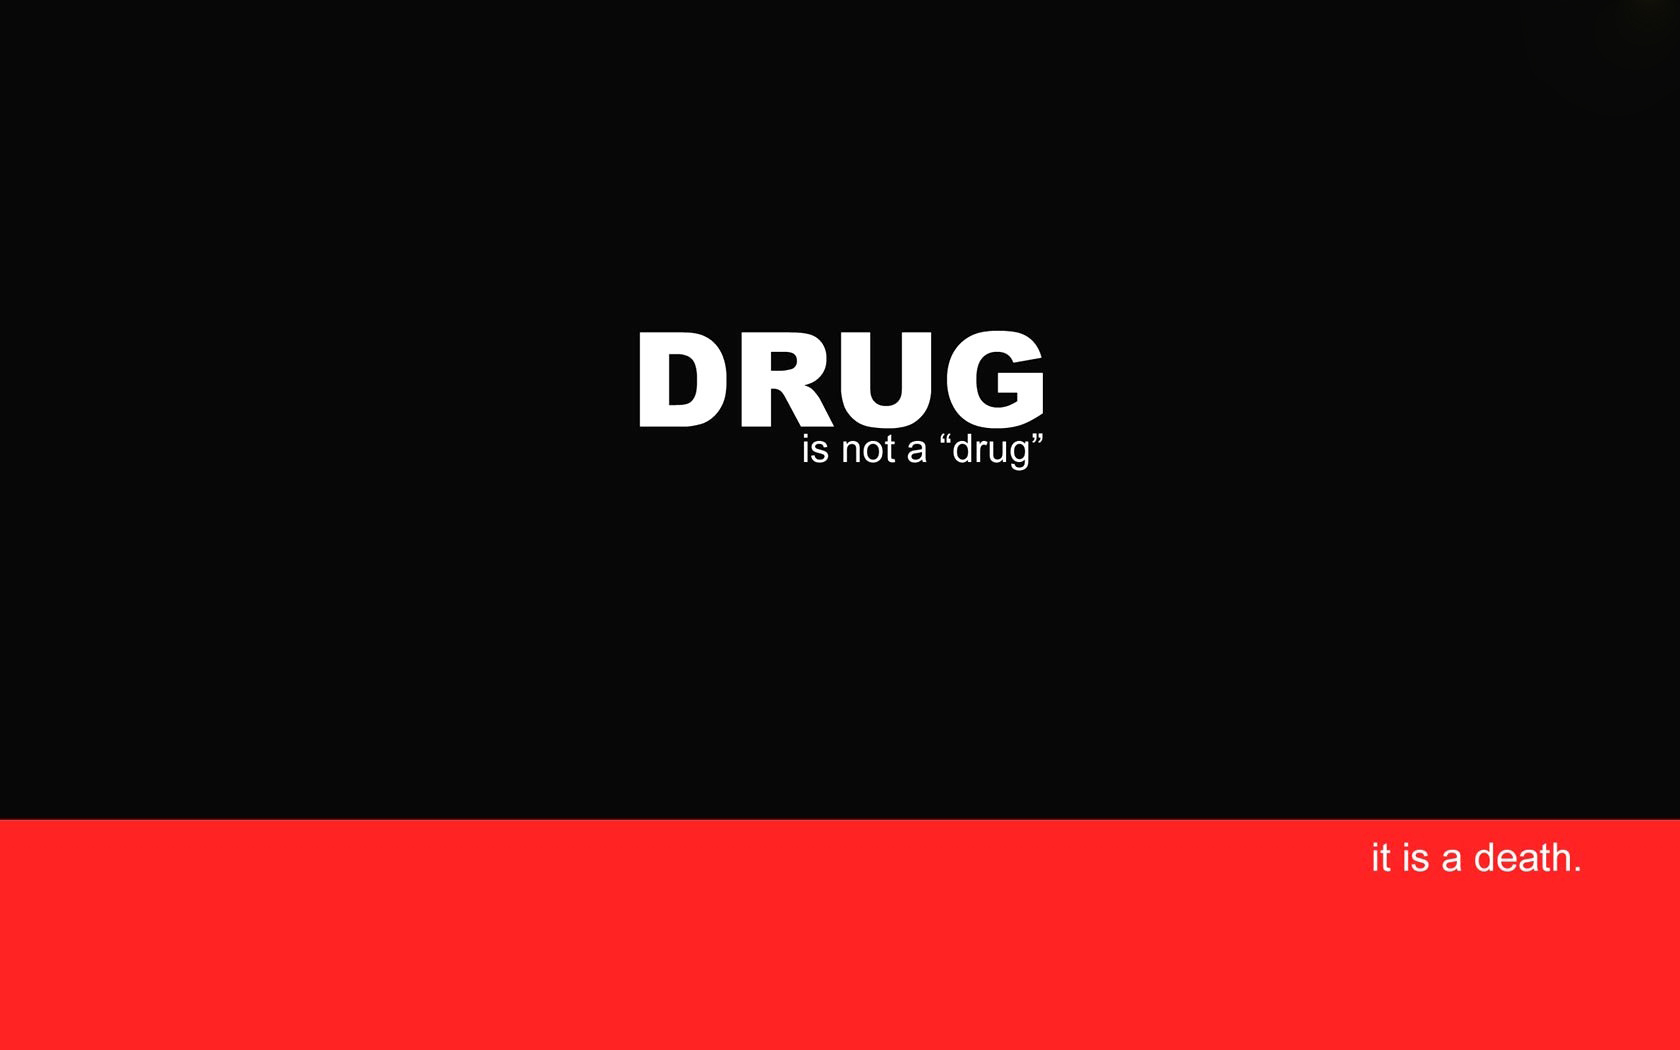 Drugs Quote Wallpaper Hd 1680x1050 pixel Quote HD Wallpaper 1680x1050